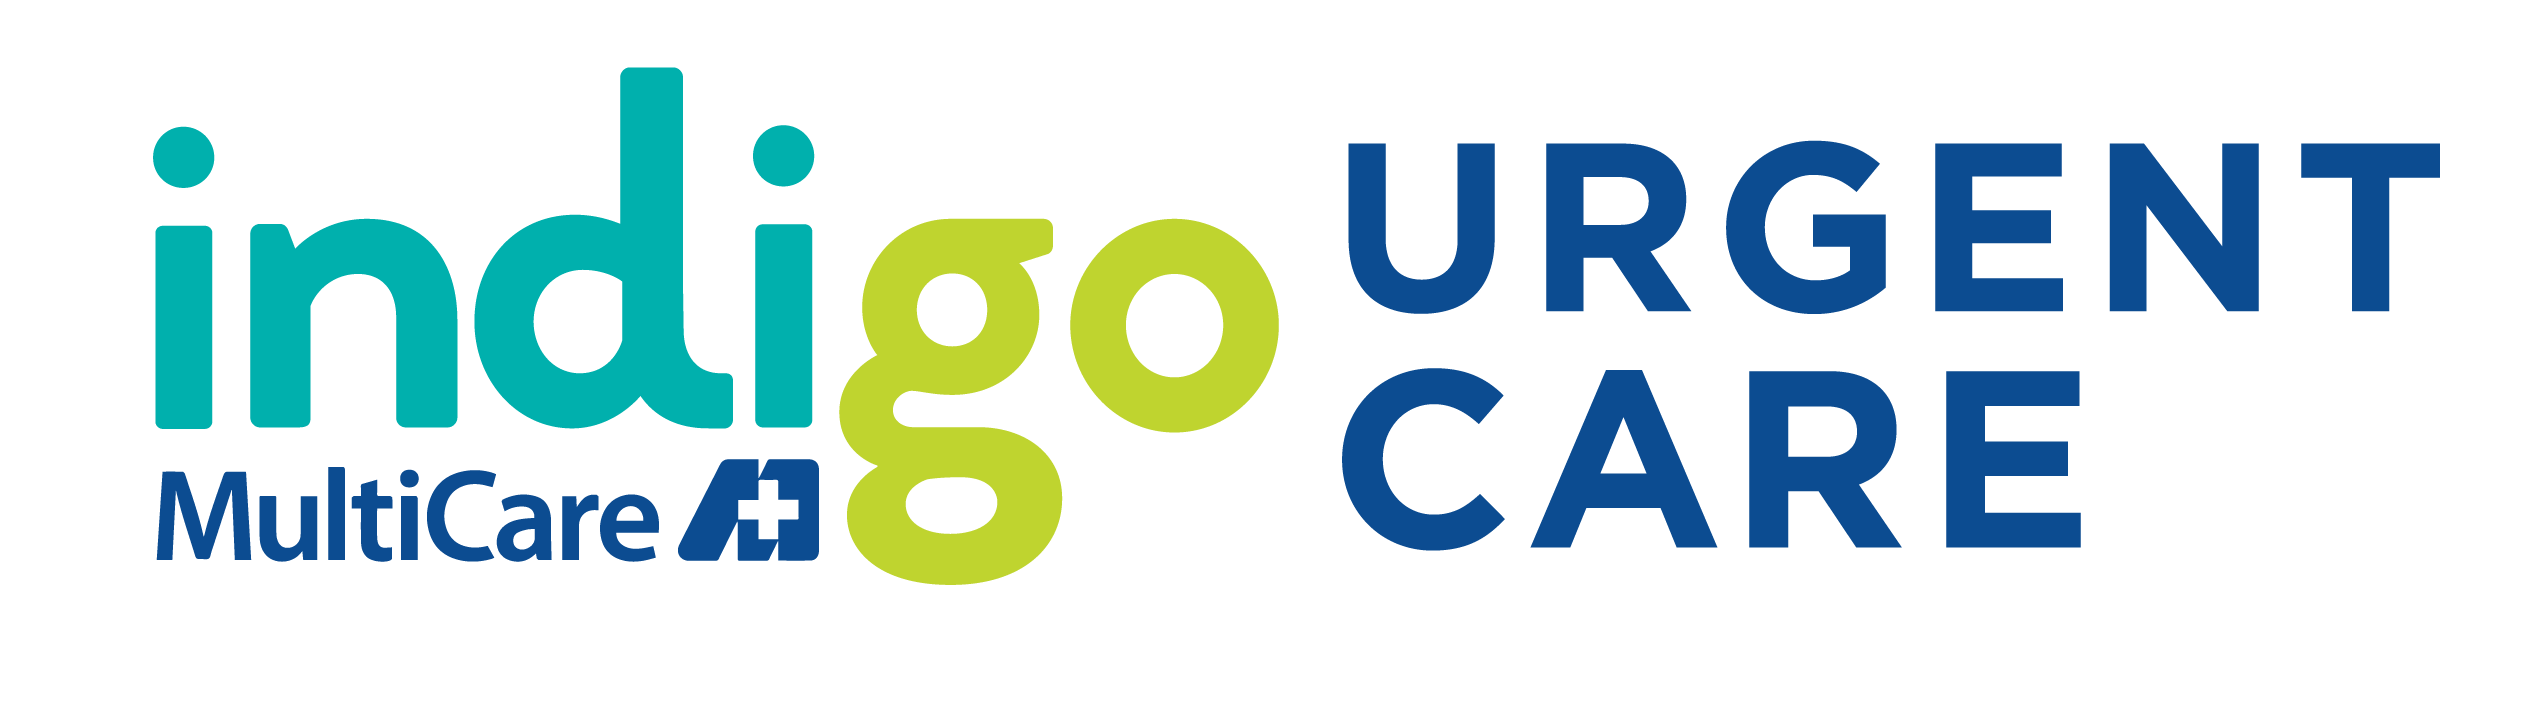 MultiCare Indigo Urgent Care - Wallingford Logo